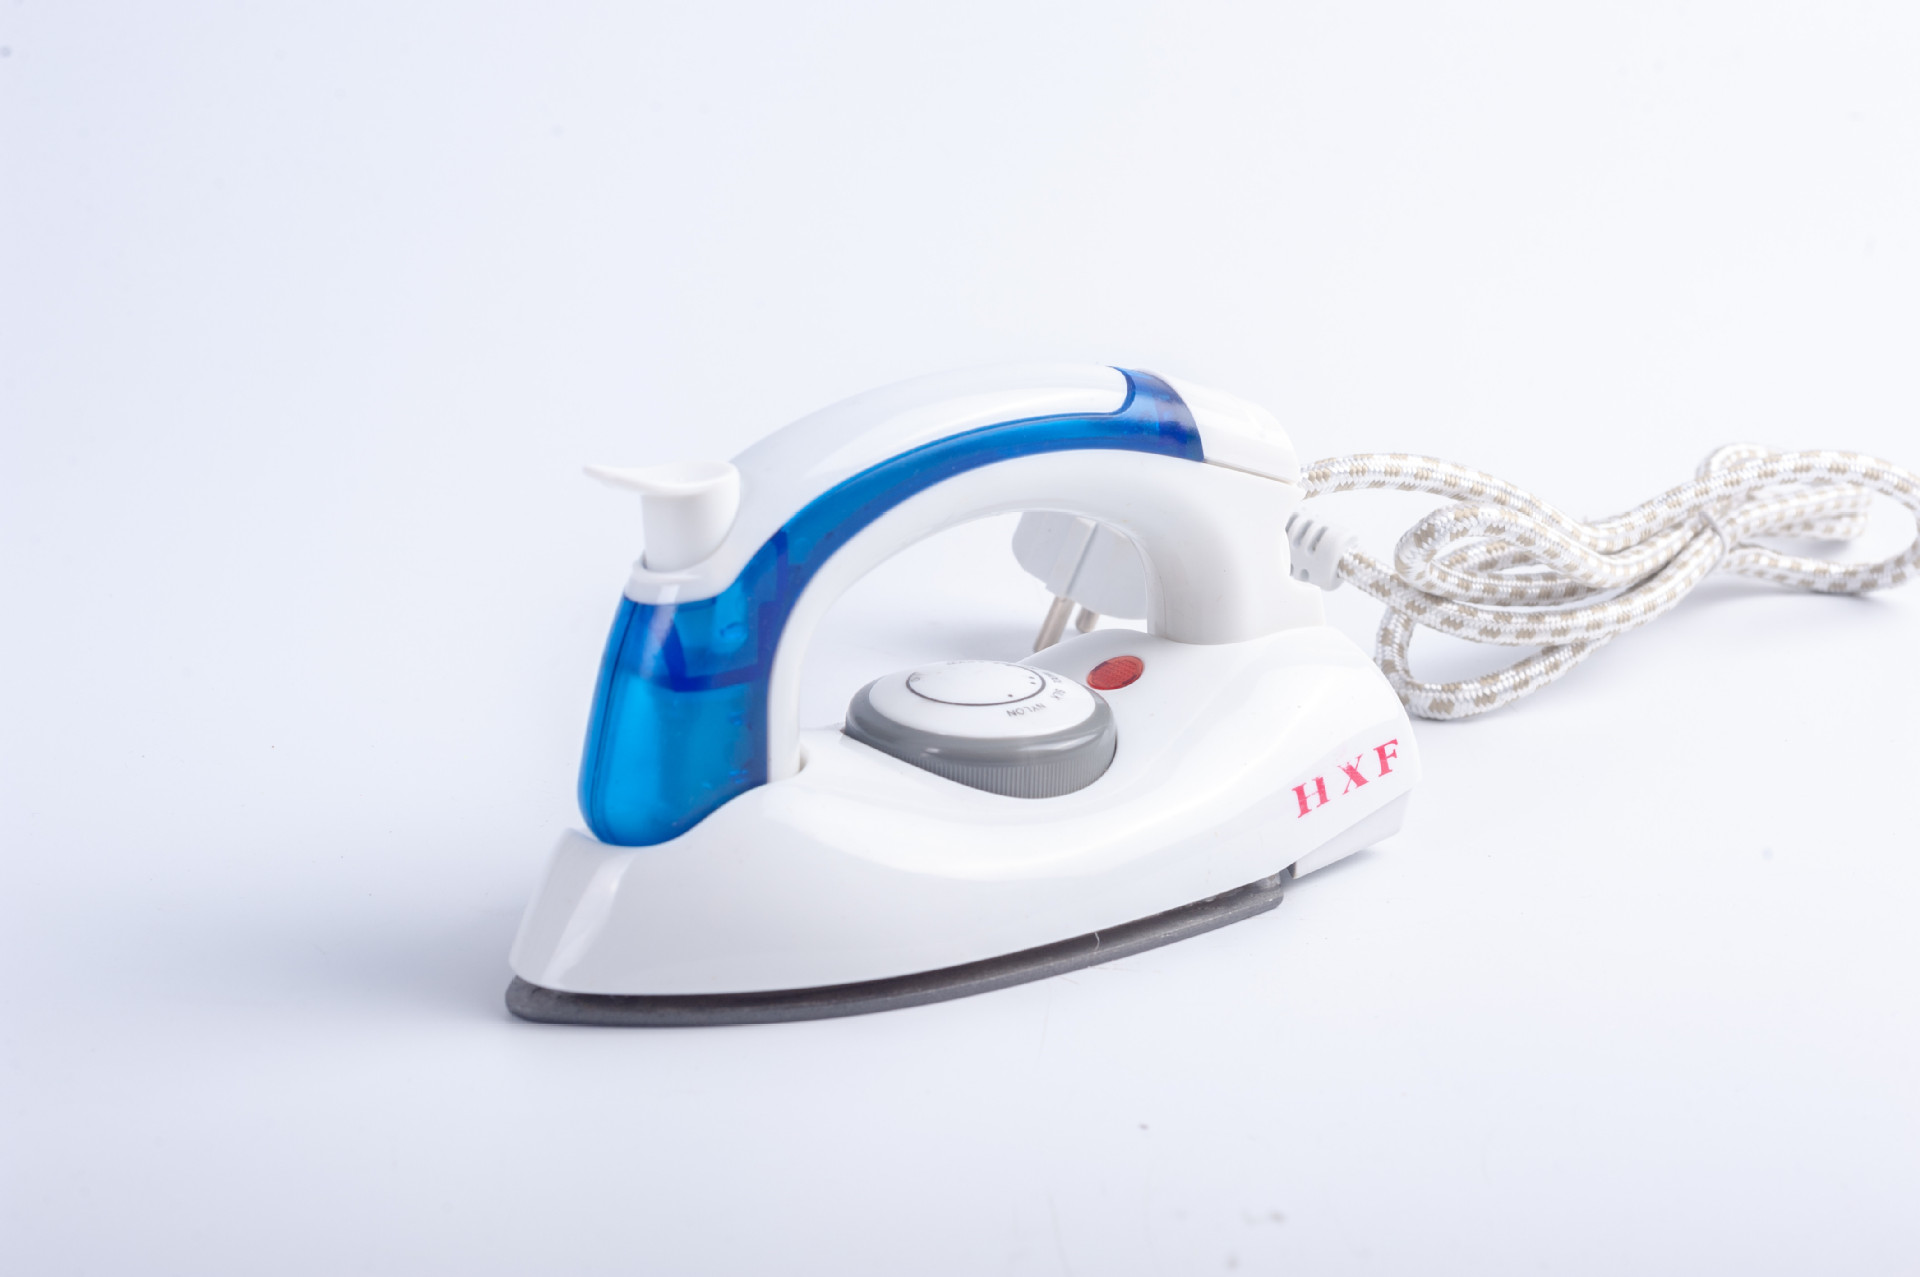 Household Small Home Appliance Mini Steam And Dry Iron Travel Dry Wrinkle Ironing Machine Cross Border